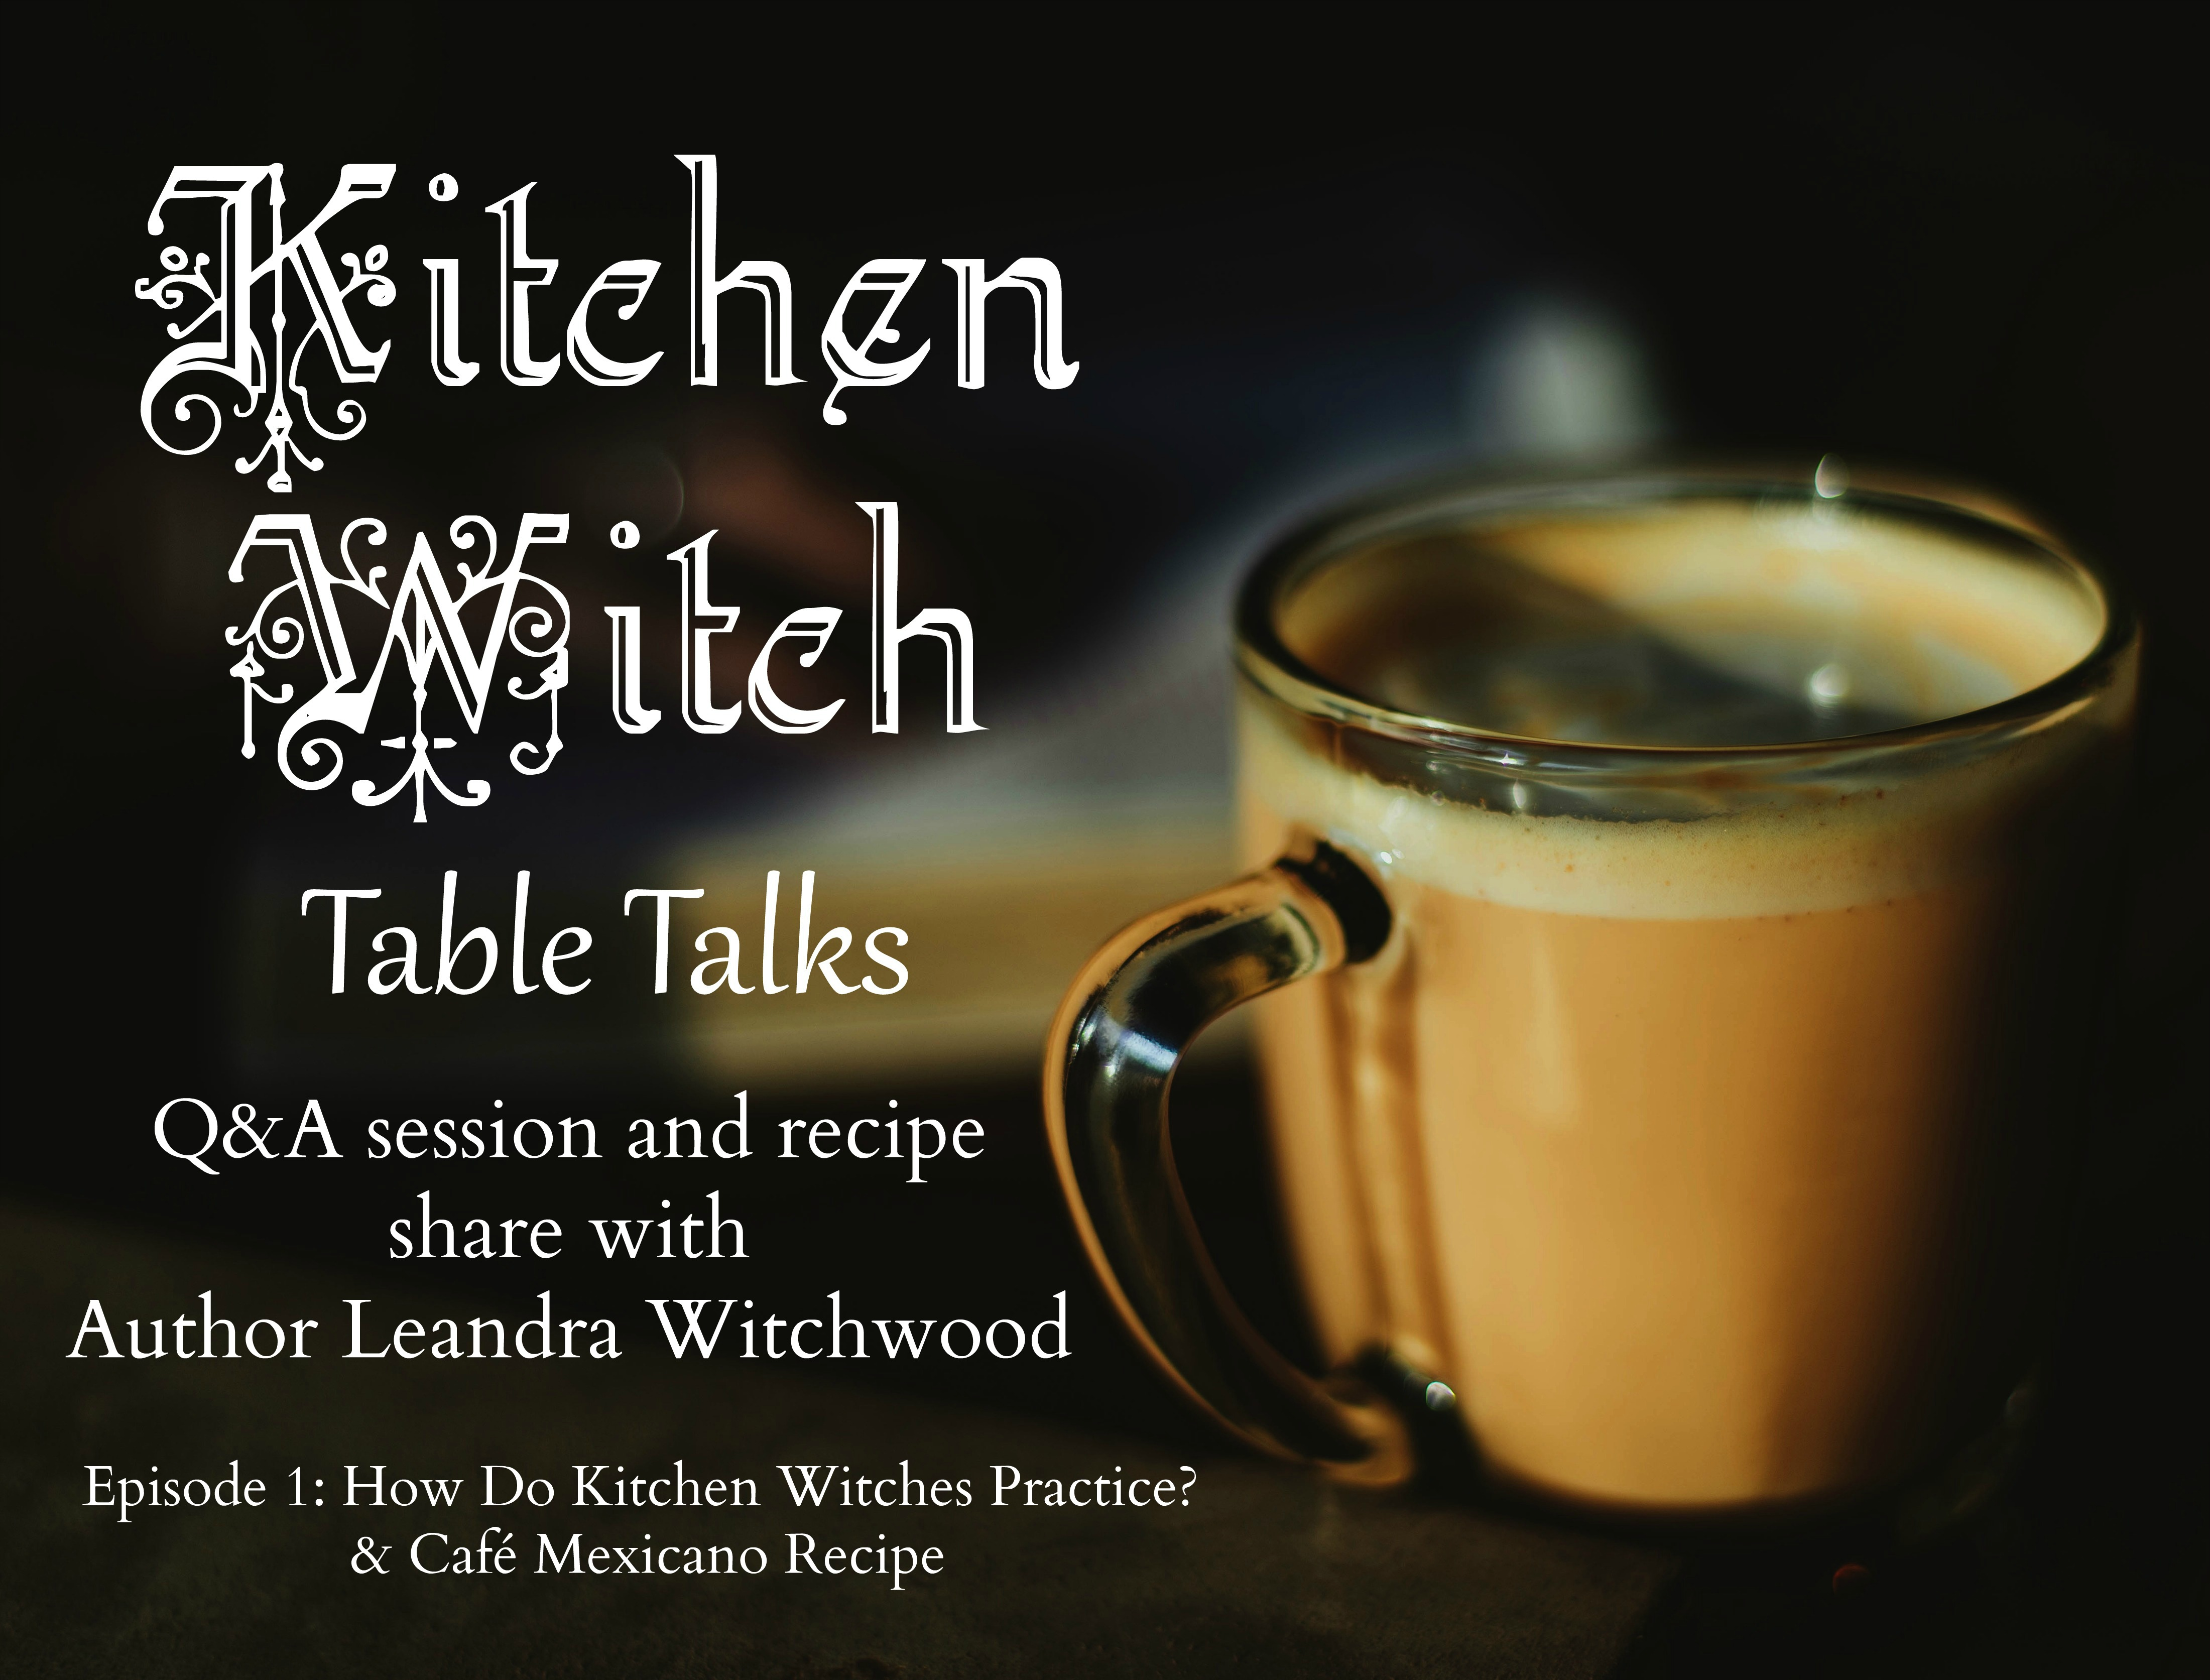 Kitchen Witch Table Talks Episode 1 - The Magick Kitchen